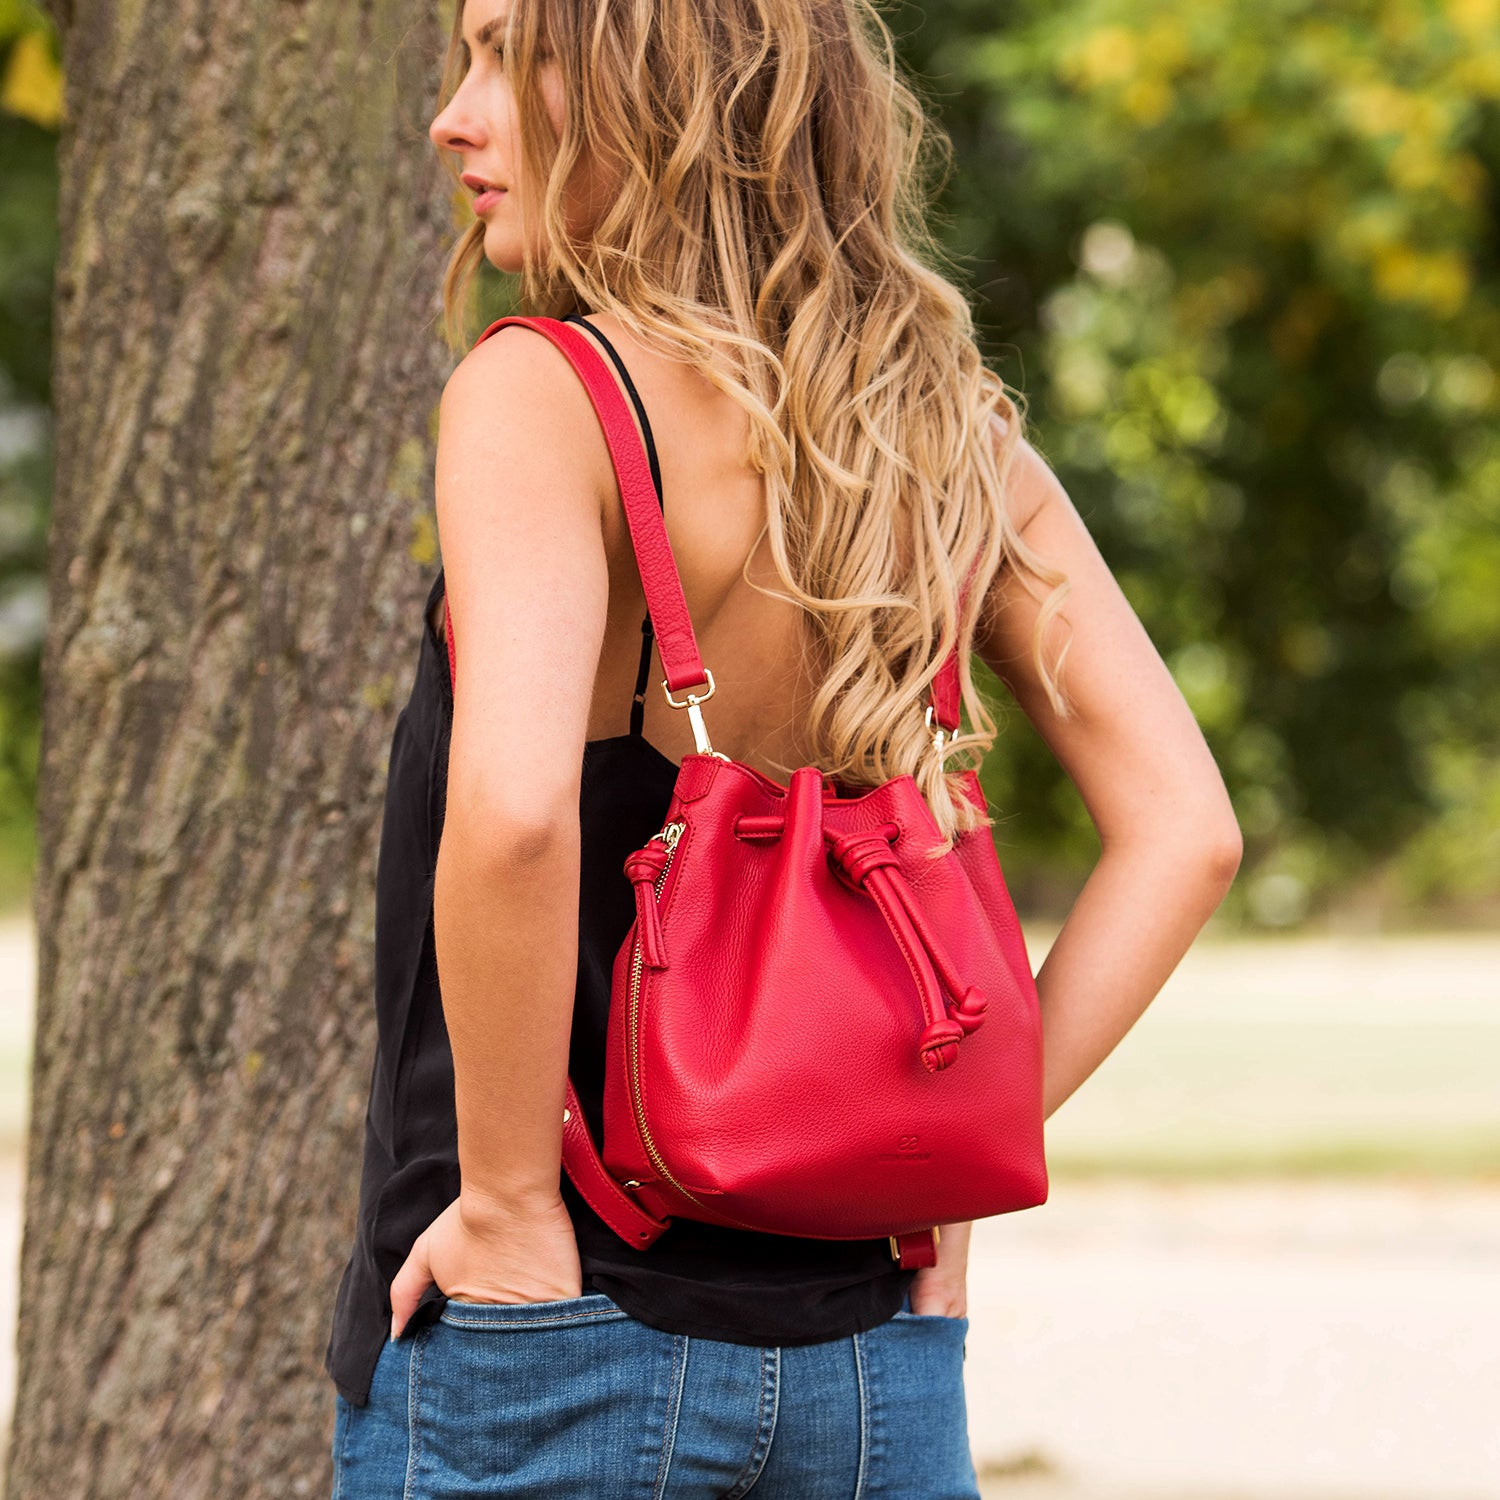 Model wearing a convertible medium leather bucket crossbody bag in red as a backpack.